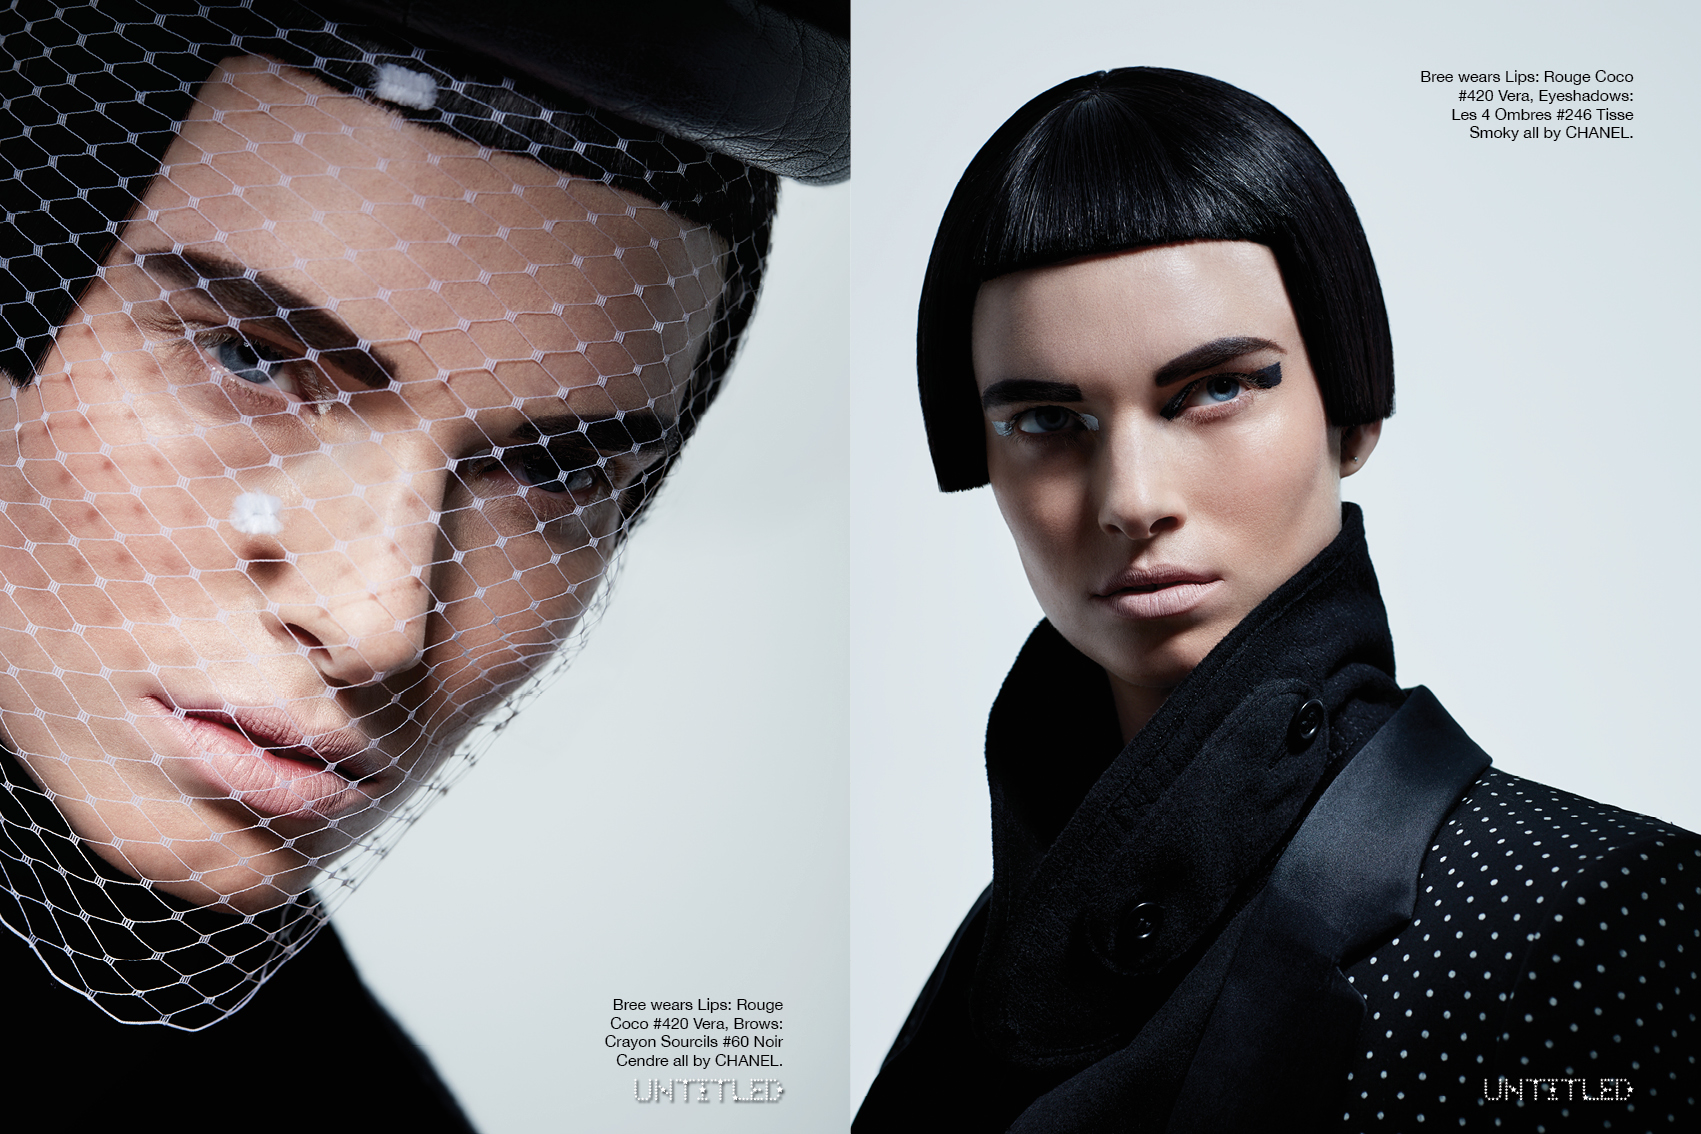 NOIR ET BLANC - The Untitled Magazine - Photography by Giuliano Bekor 4.jpg